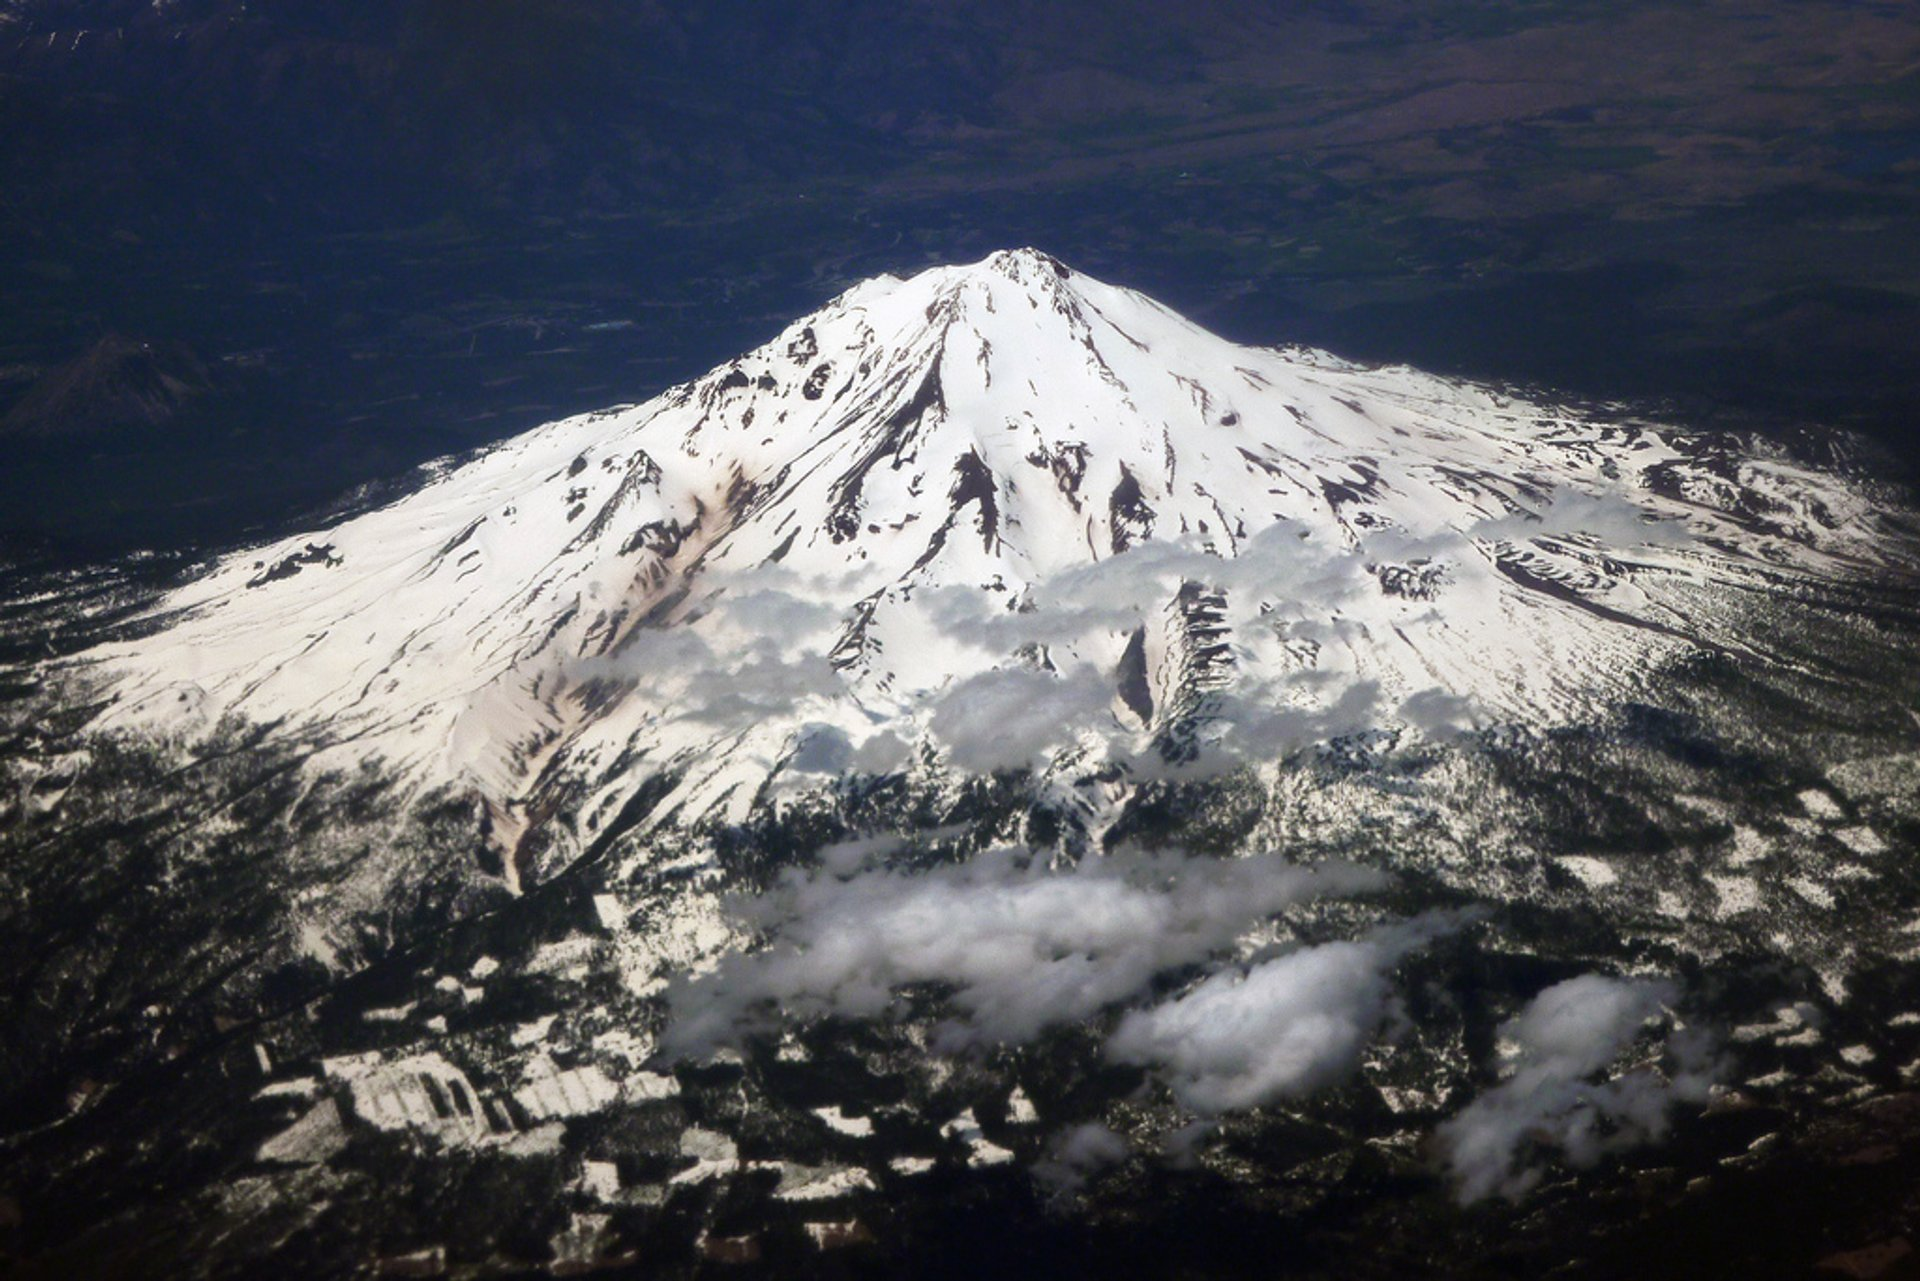 Mount Shasta in California 2020 - Best Time